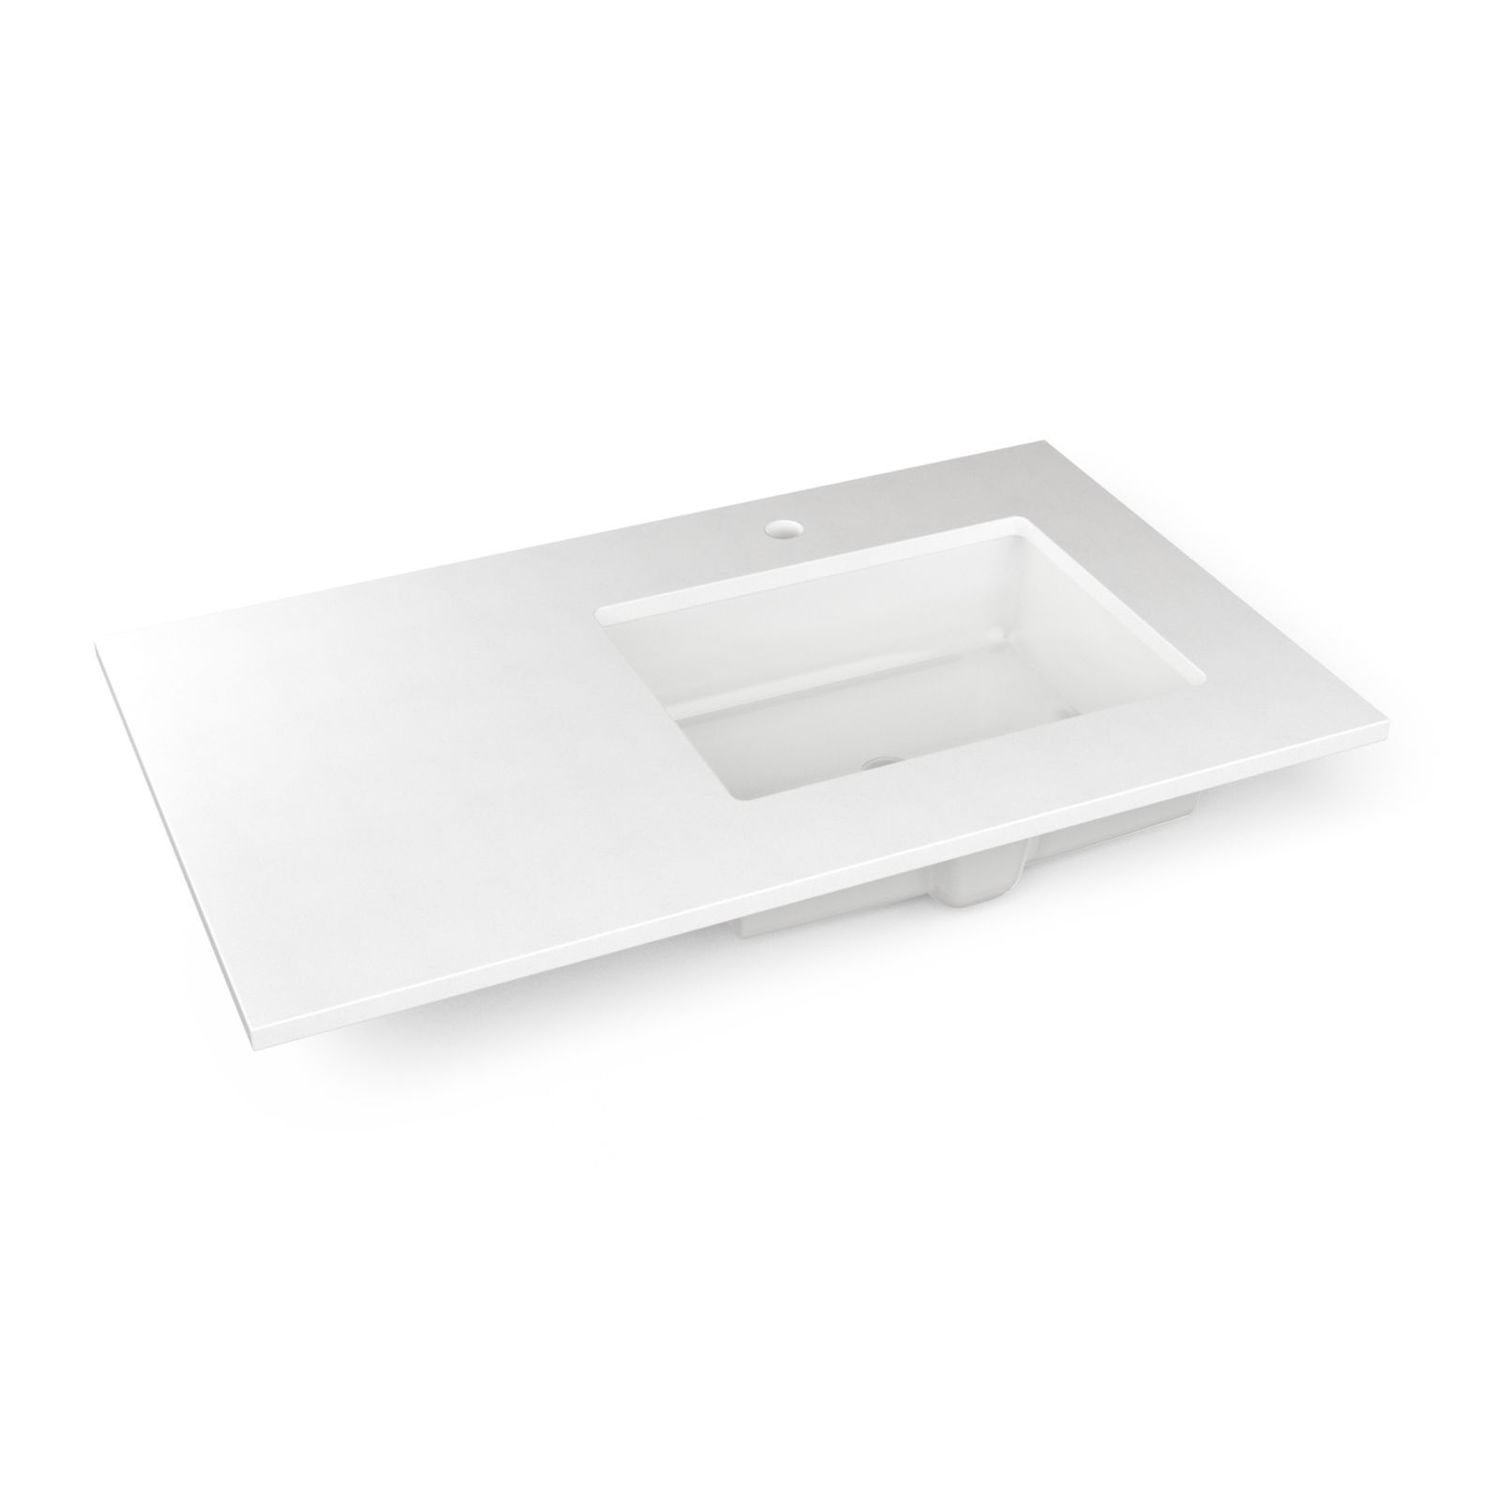 """Engineered Stone 37"""" X 22"""" X 3/4"""" Quartz Vanity Top In Quartz White With Right Offset Undercounter Sink and Single Hole Faucet Drillings"""